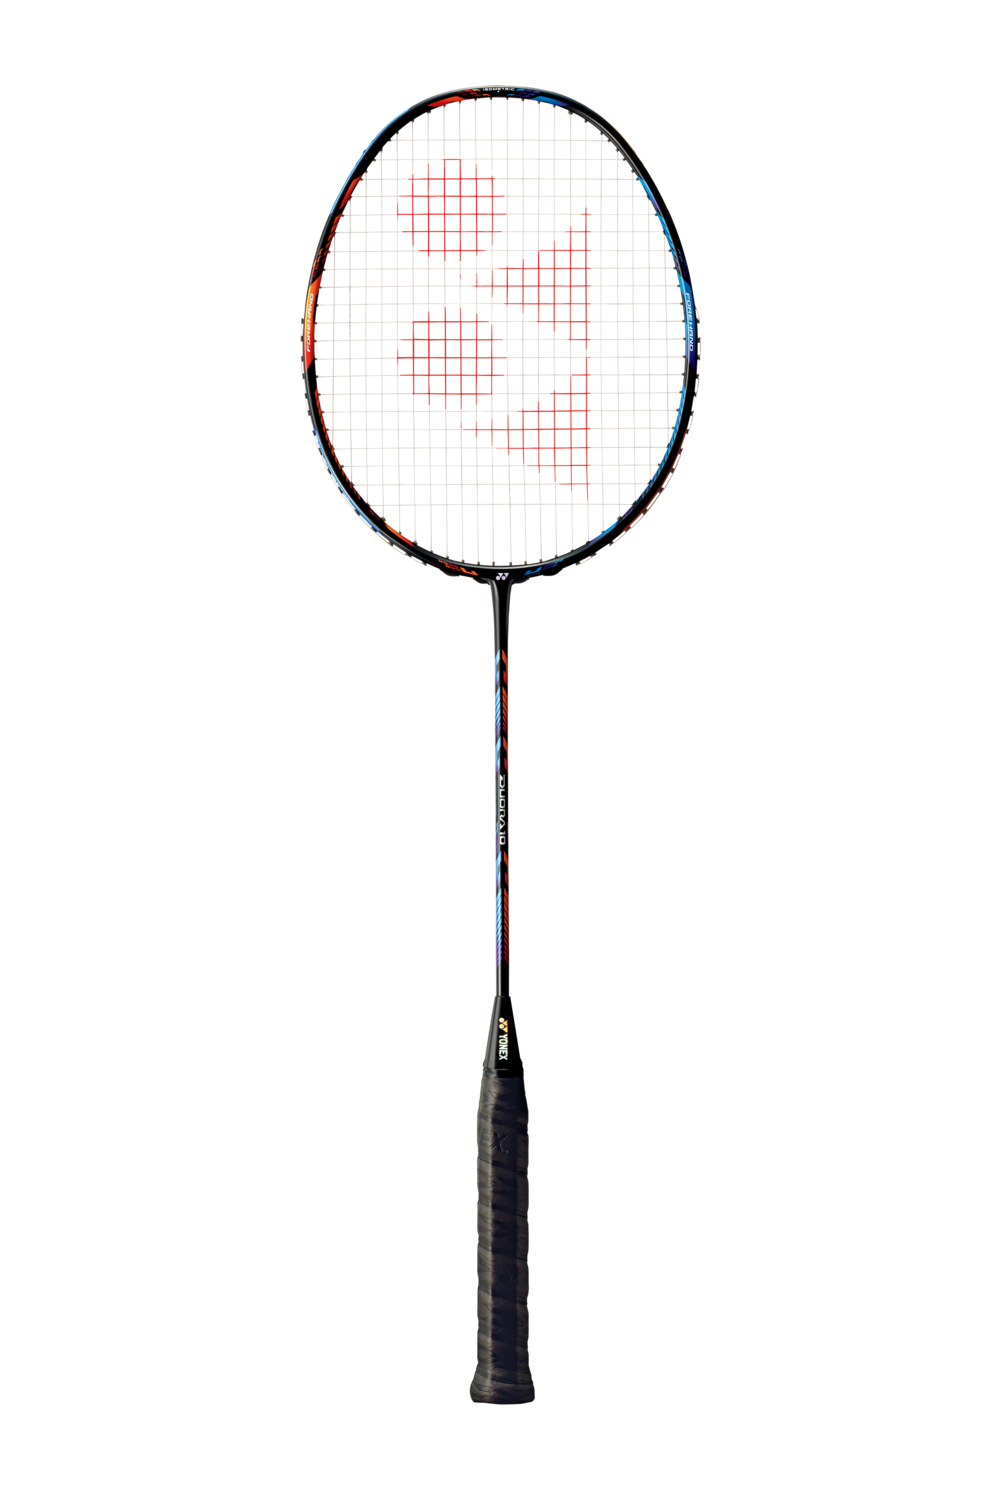 Yonex Duora 10 Badminton Racket - Blue/Orange